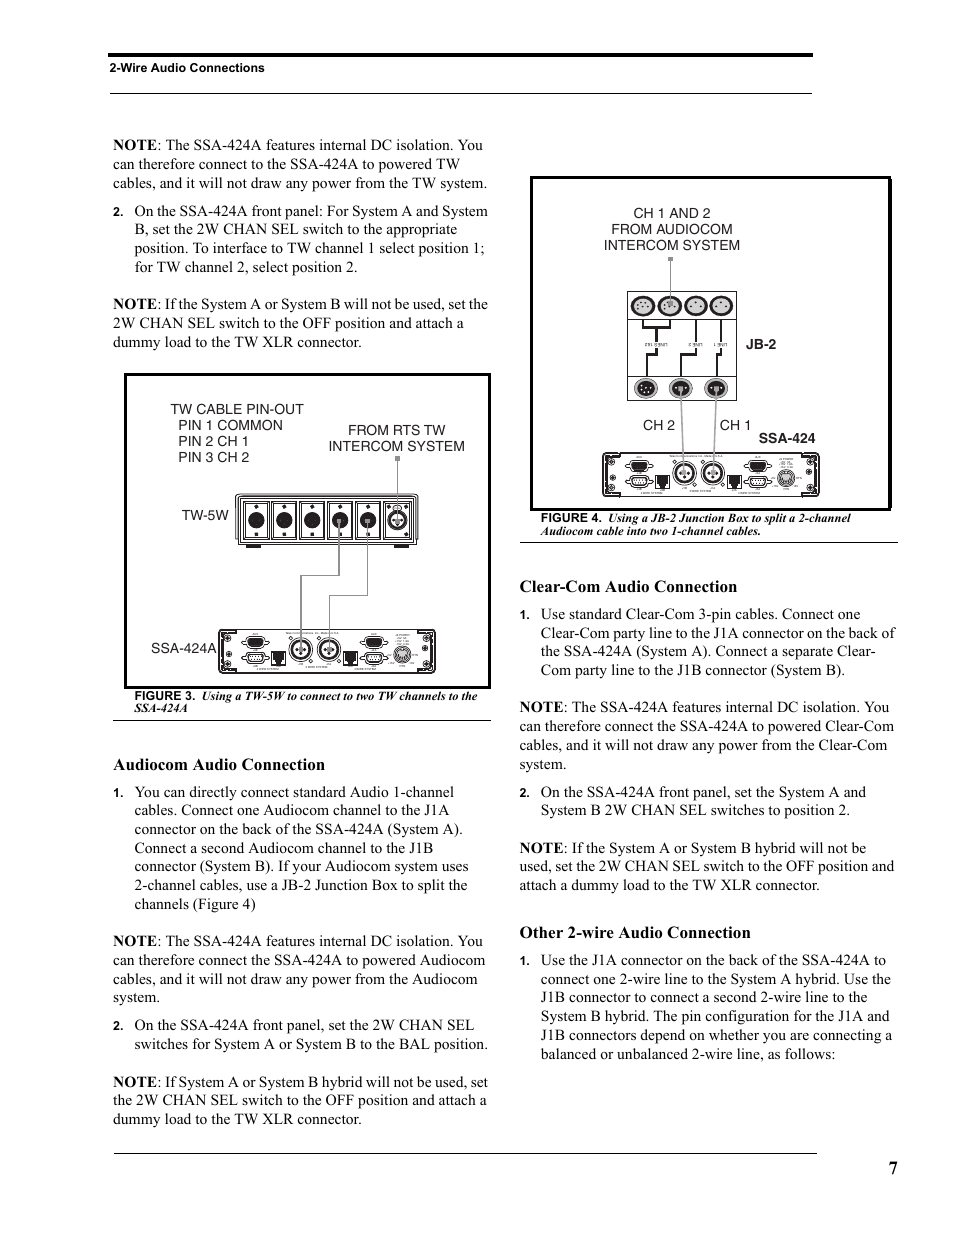 Audiocom audio connection, Clear-com audio connection, Other 2-wire ...